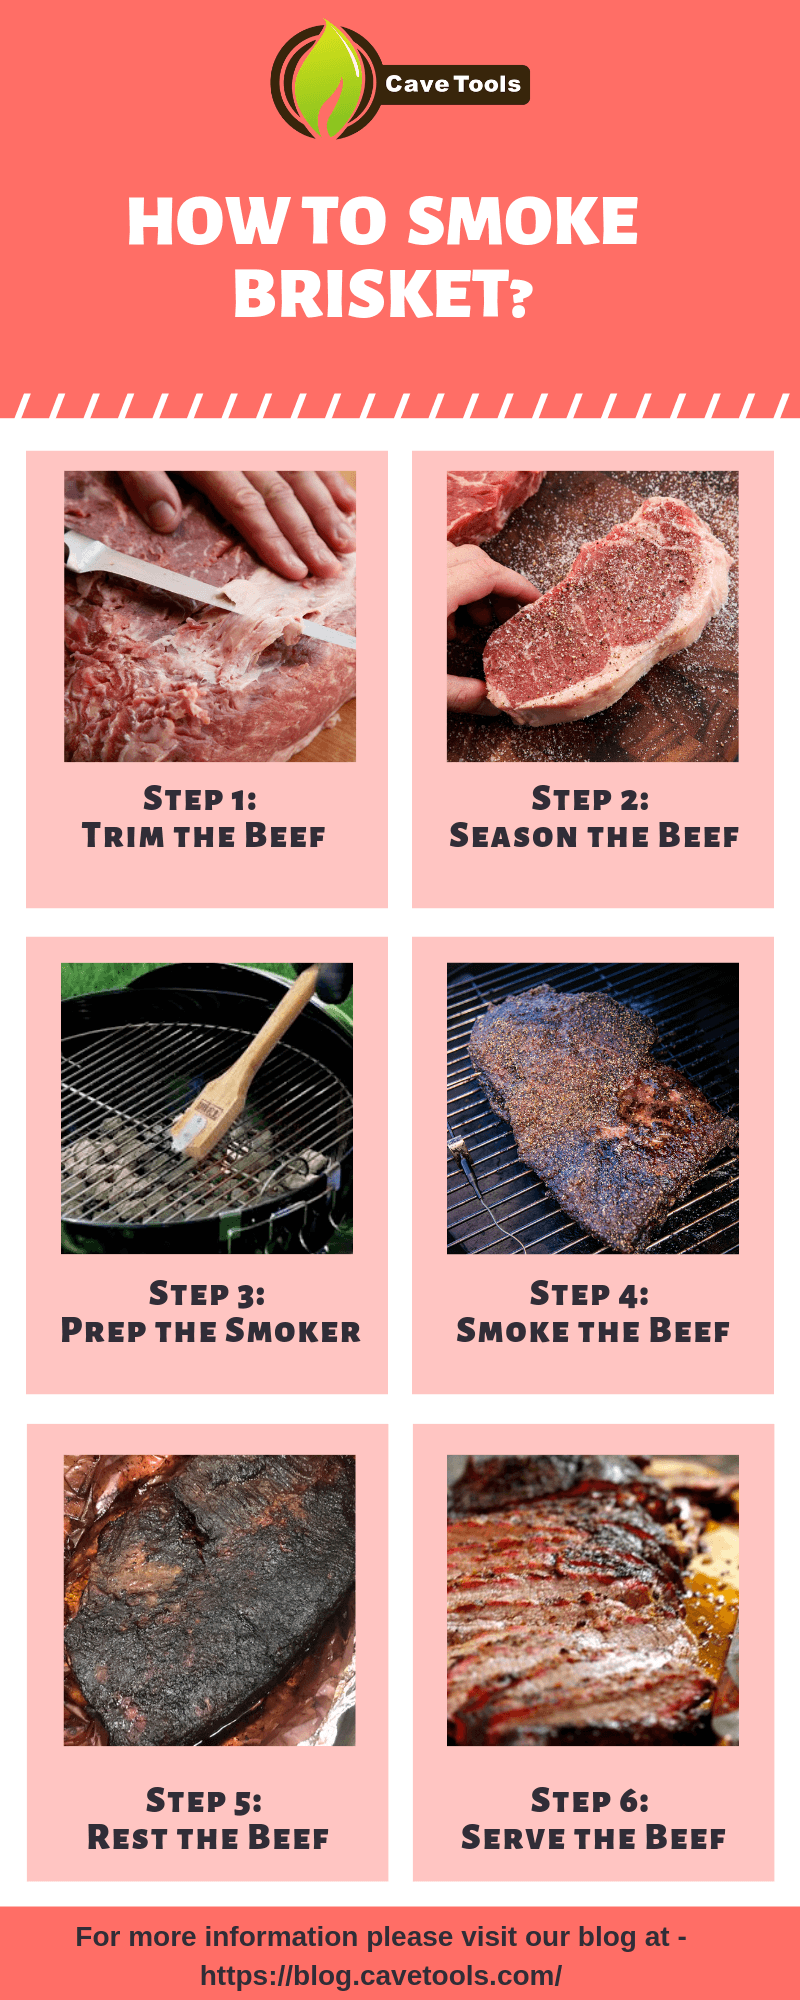 How To Choose Best Wood For Smoking Brisket